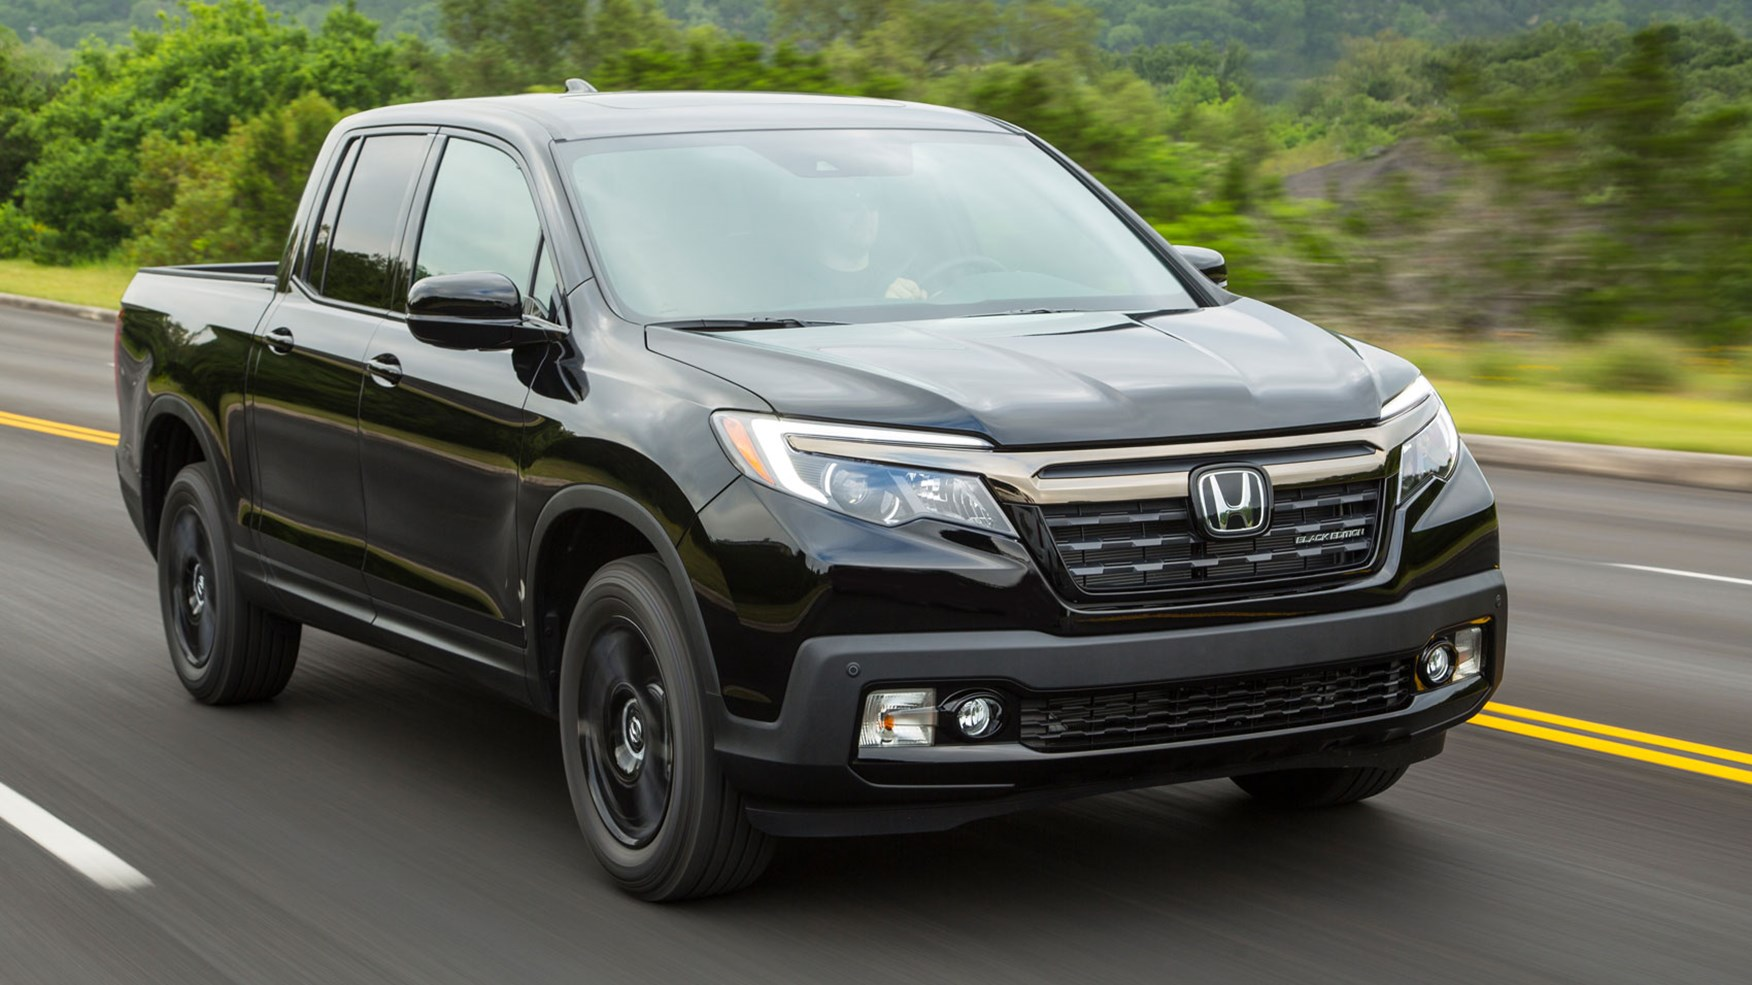 Image Result For Honda Ridgeline Complaints